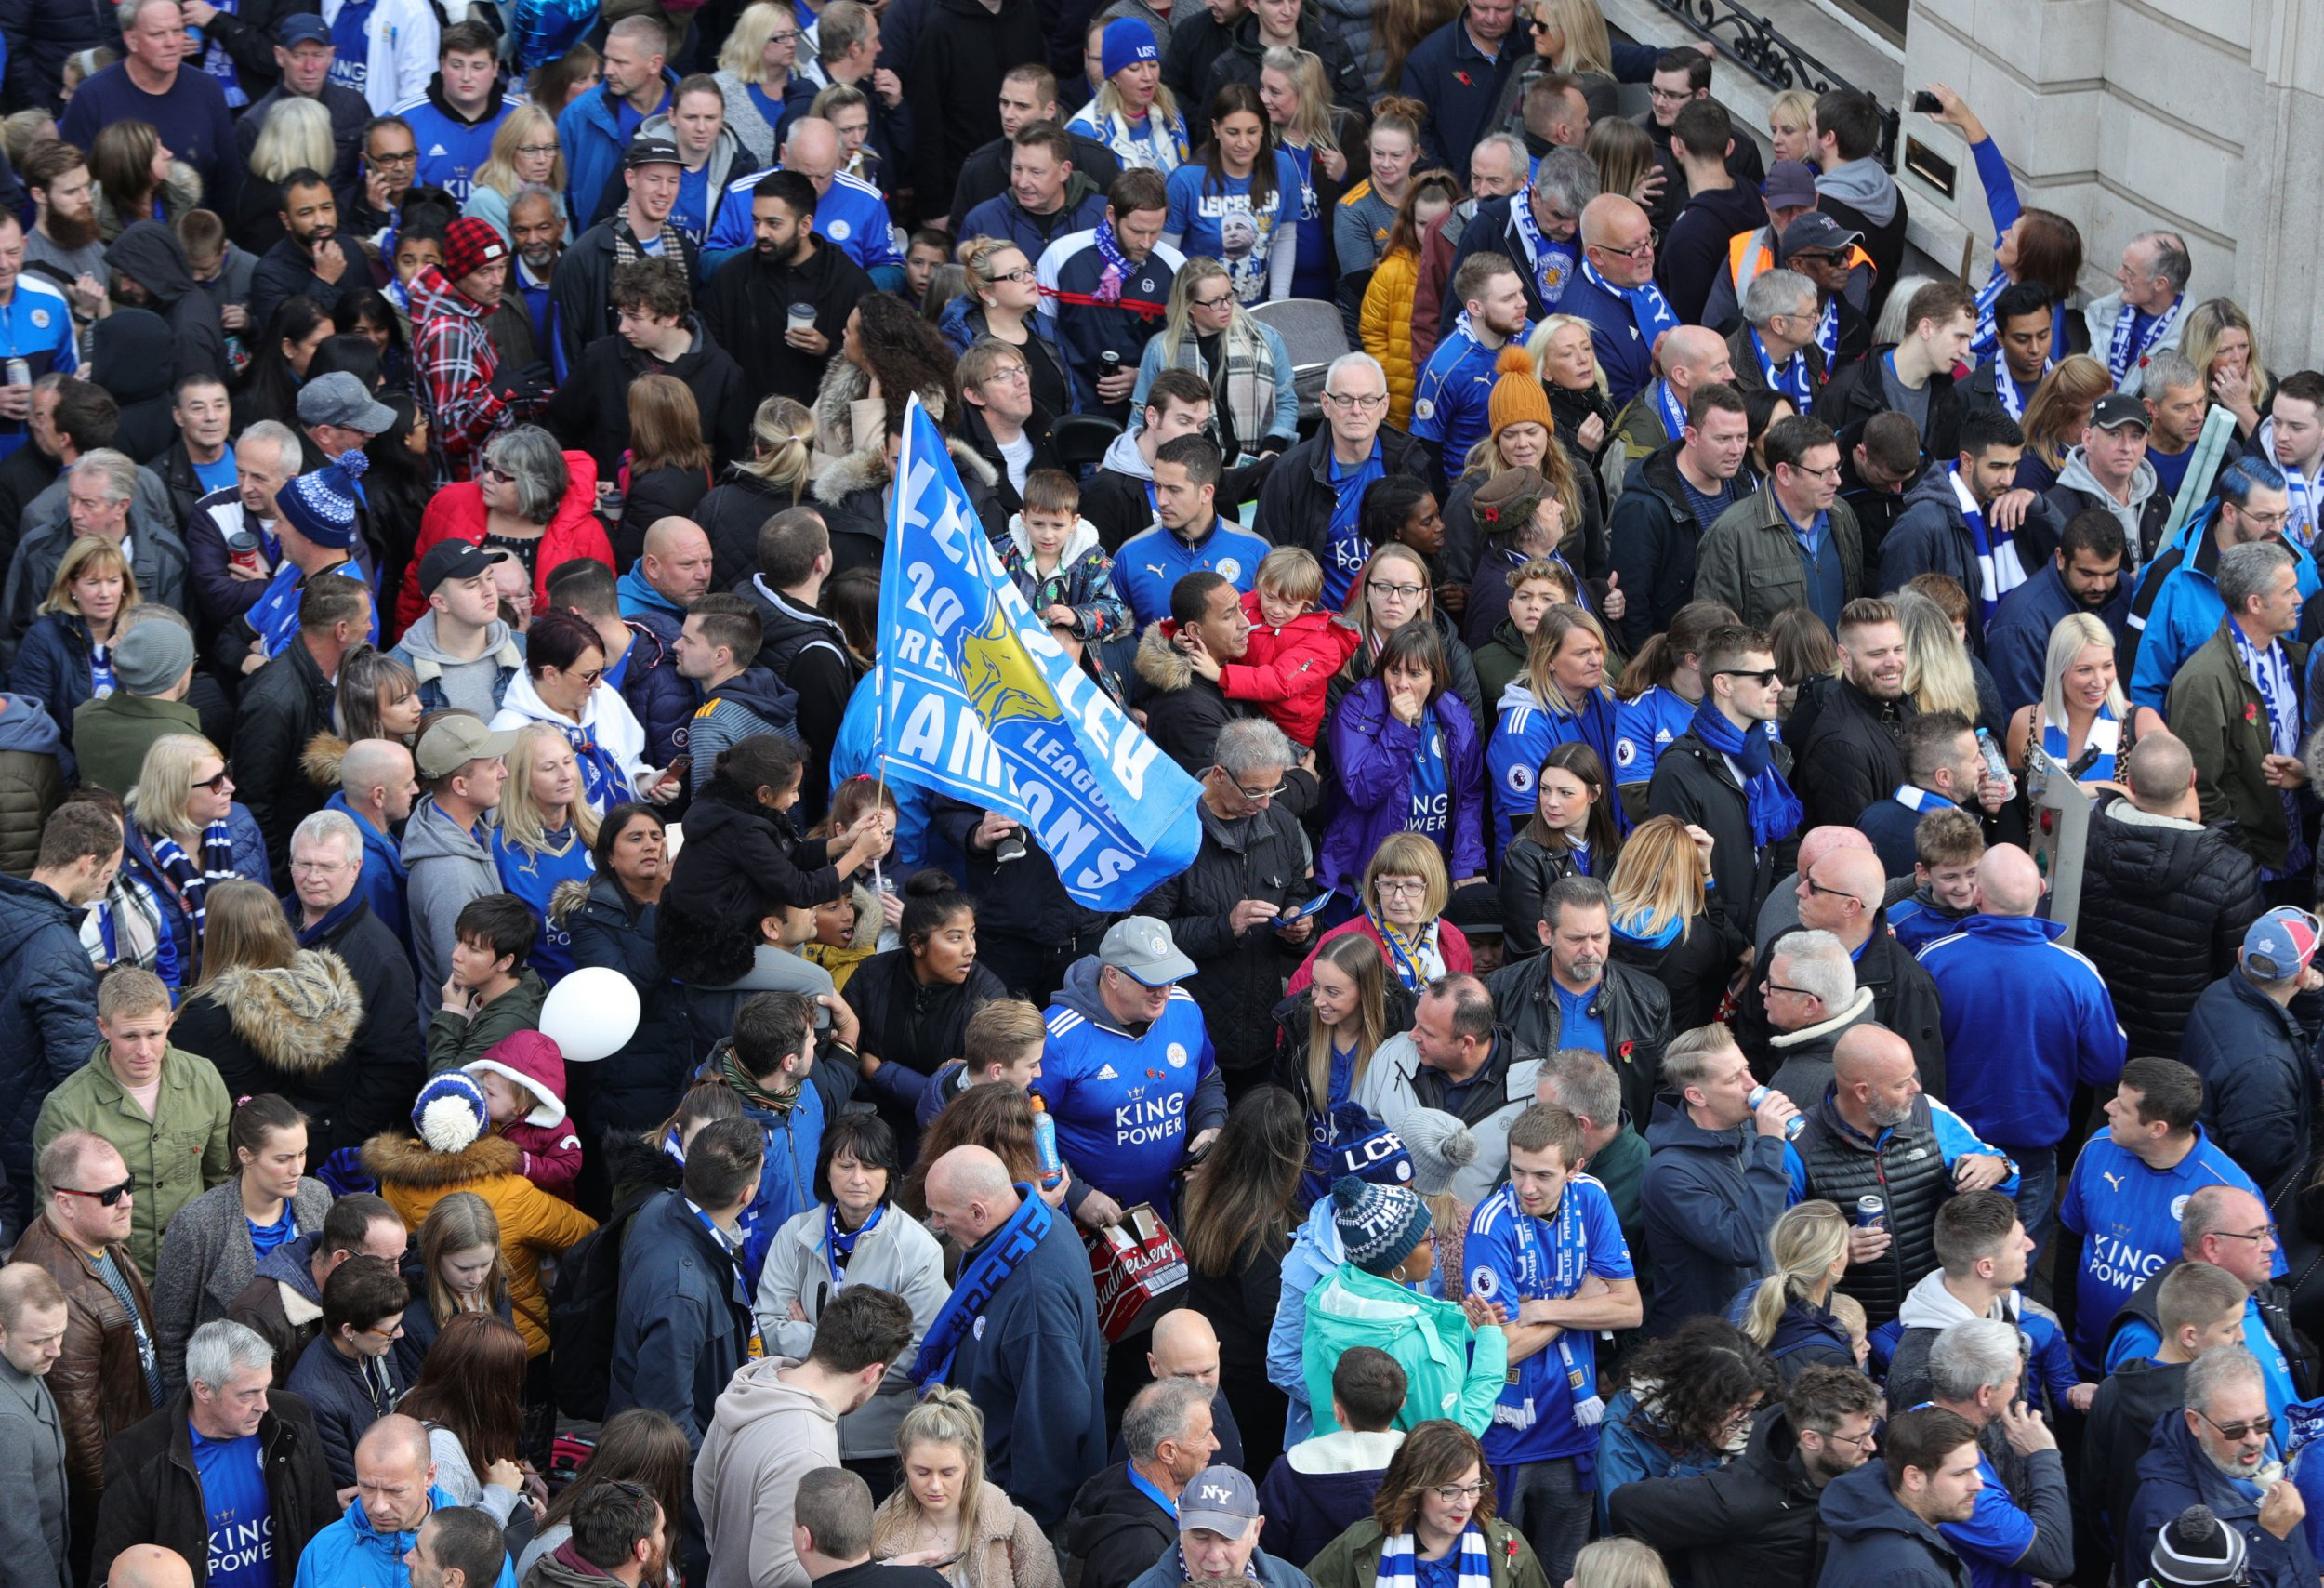 Leicester City fans gather at Jubilee Square in Leicester, before taking part in a memorial walk to the King Power Stadium, in honour of the club's owner Vichai Srivaddhanaprabha and four others who died in a helicopter crash outside the stadium on October 27. PRESS ASSOCIATION Photo. Picture date: Saturday November 10, 2018. See PA story SOCCER Leicester. Photo credit should read: Aaron Chown/PA Wire